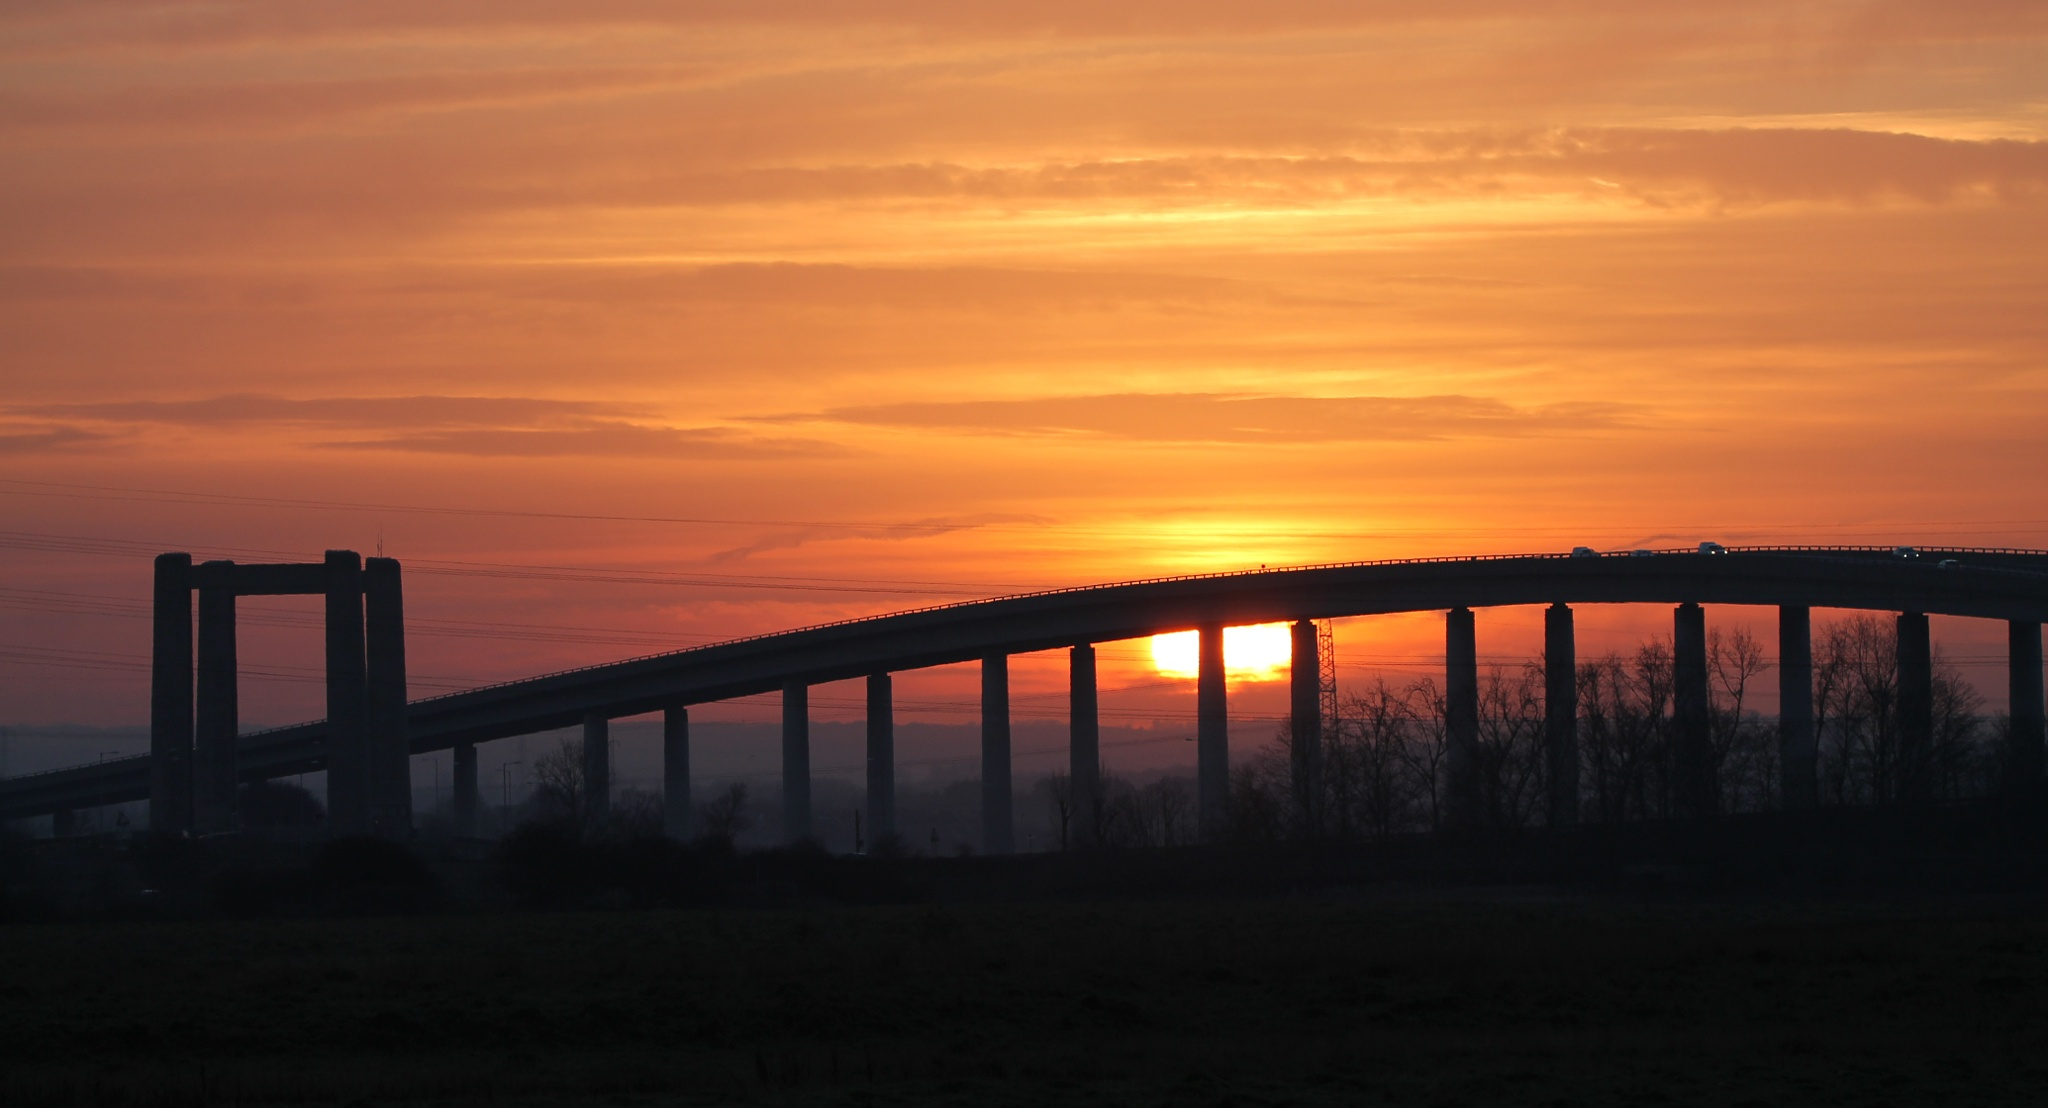 Sunset over Sheppey Bridge by Dave Griffin Photography.